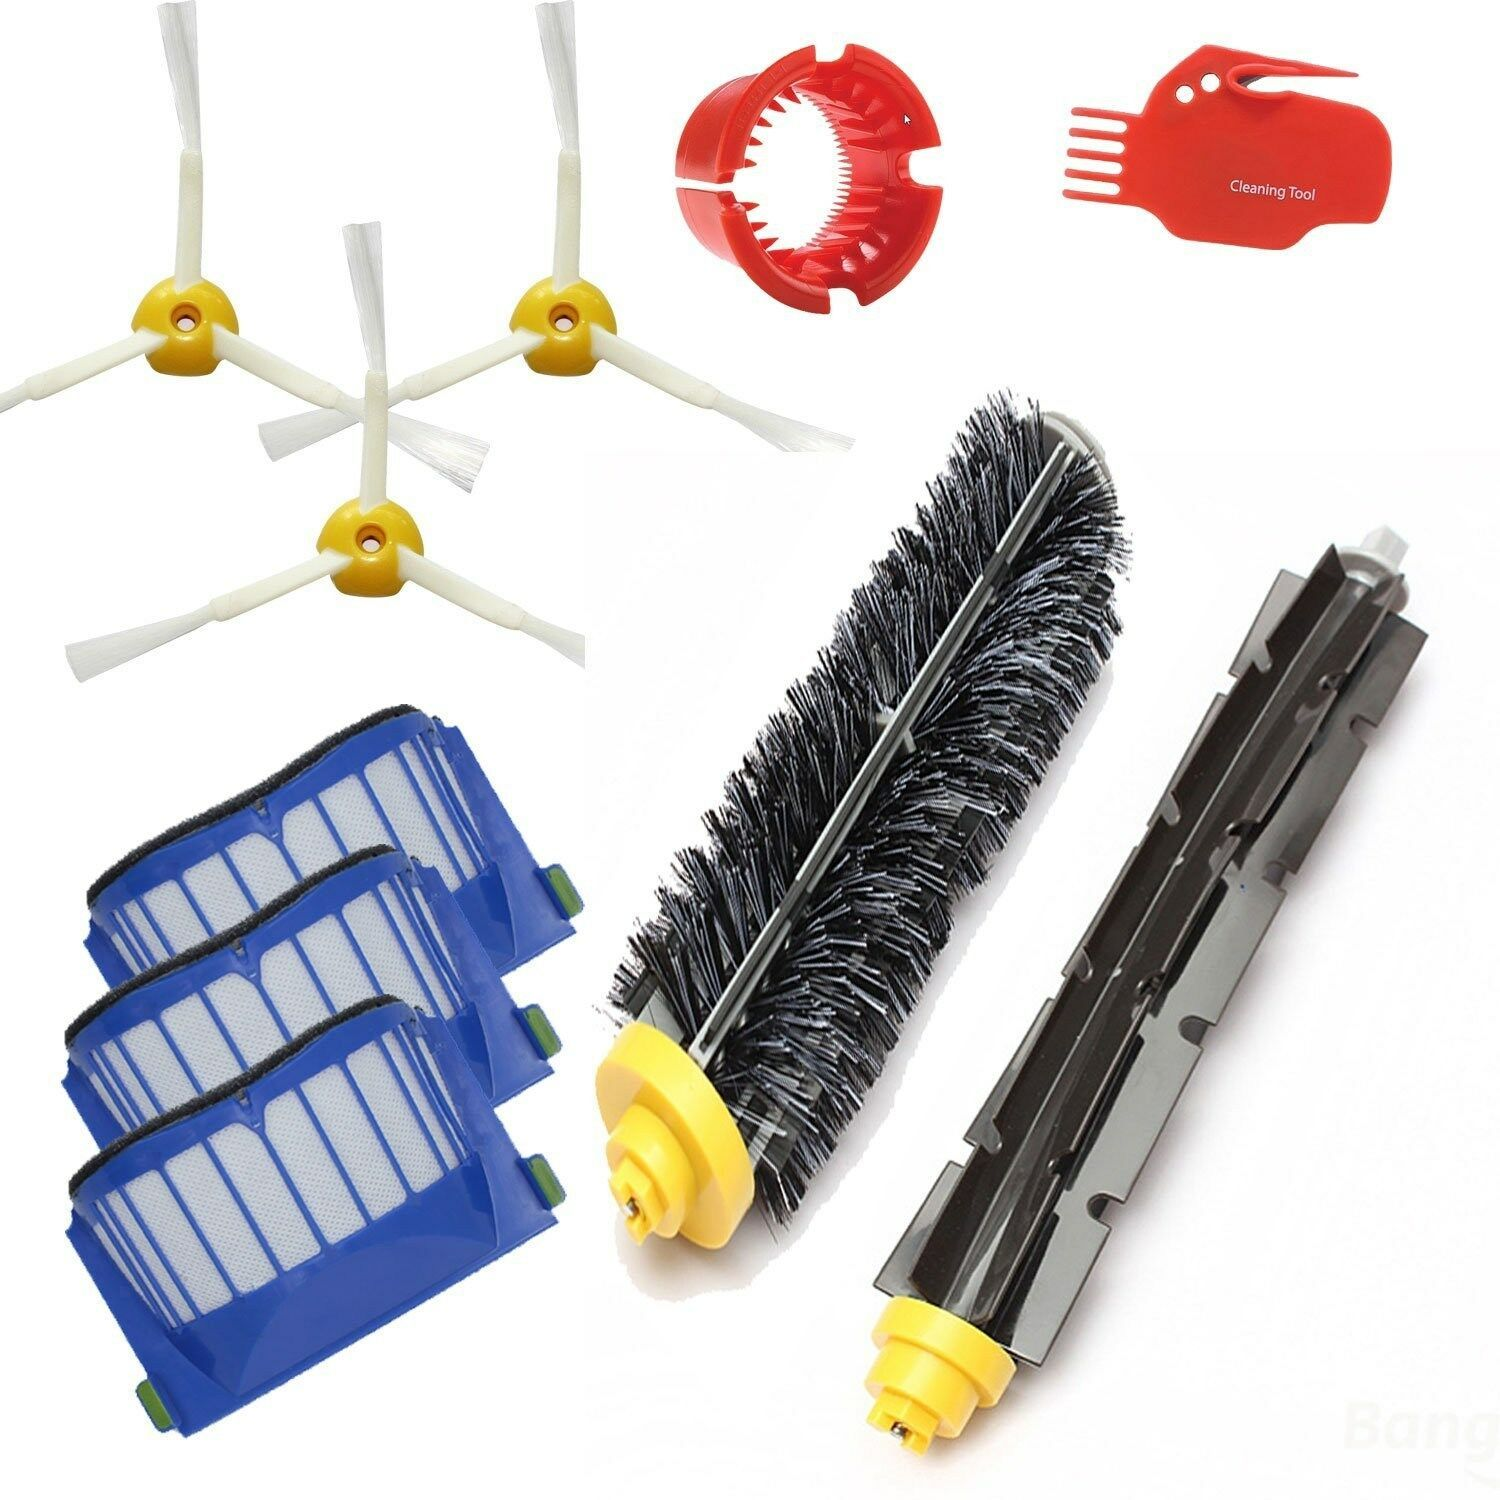 Accessory for Irobot Roomba 600 610 620 650 Series Vacuum Cleaner Replacement...